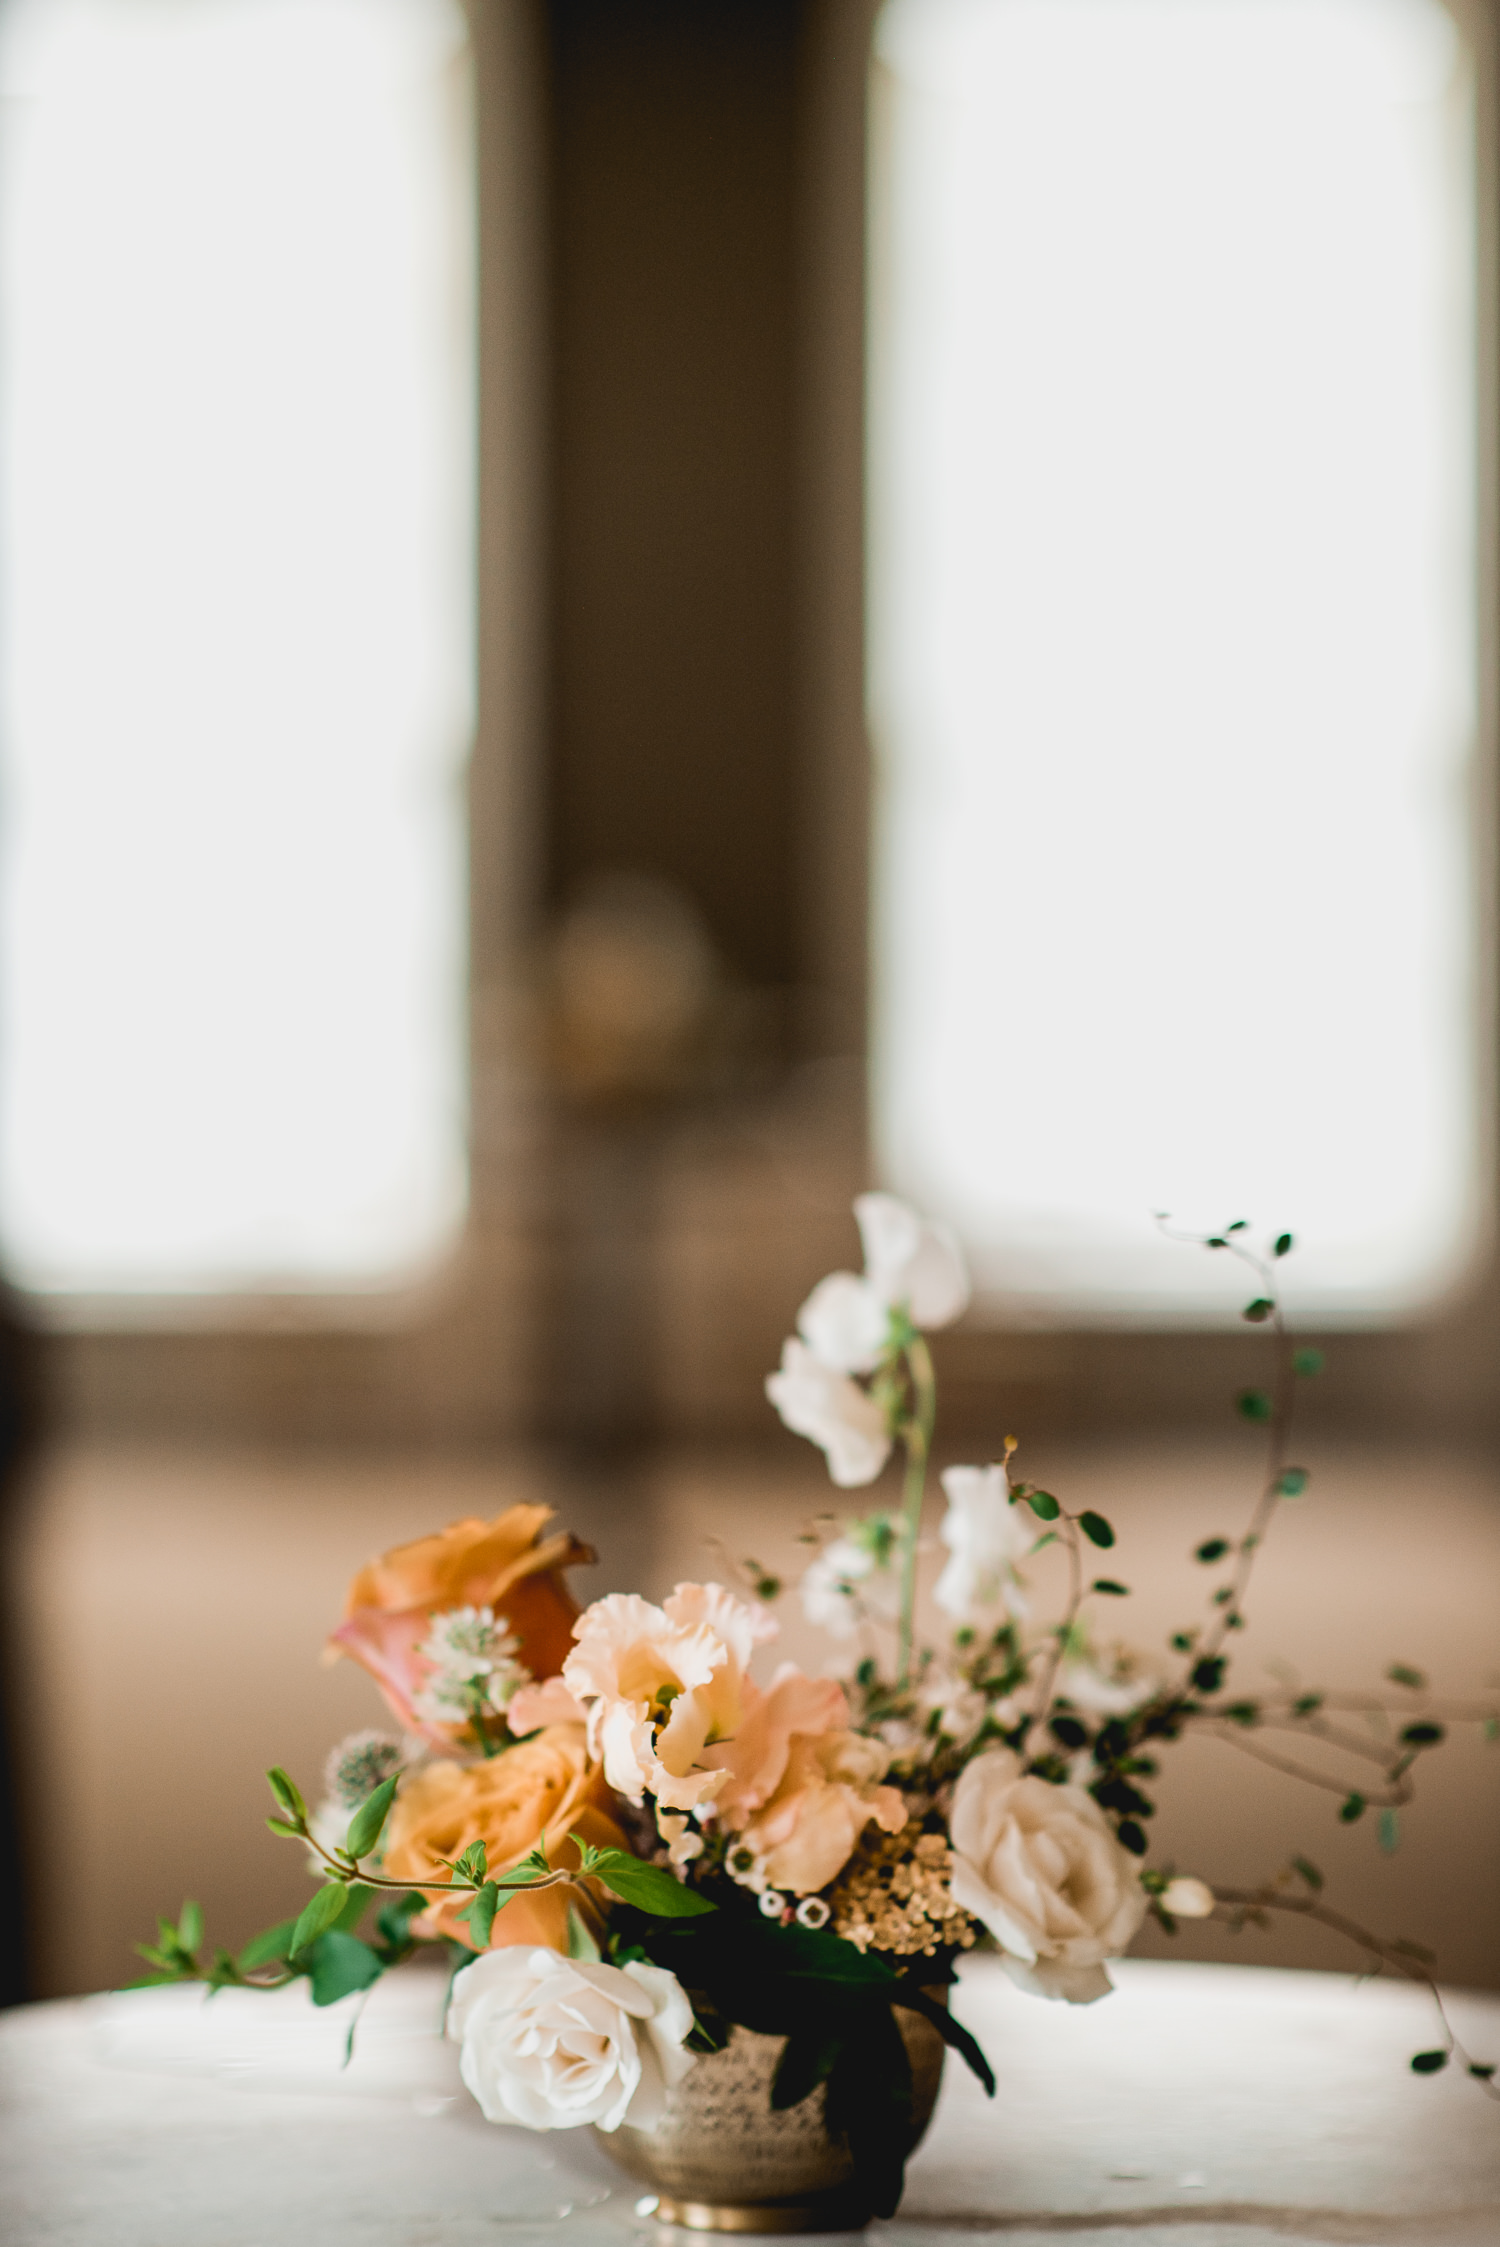 Flowers Wedding at St Giles House